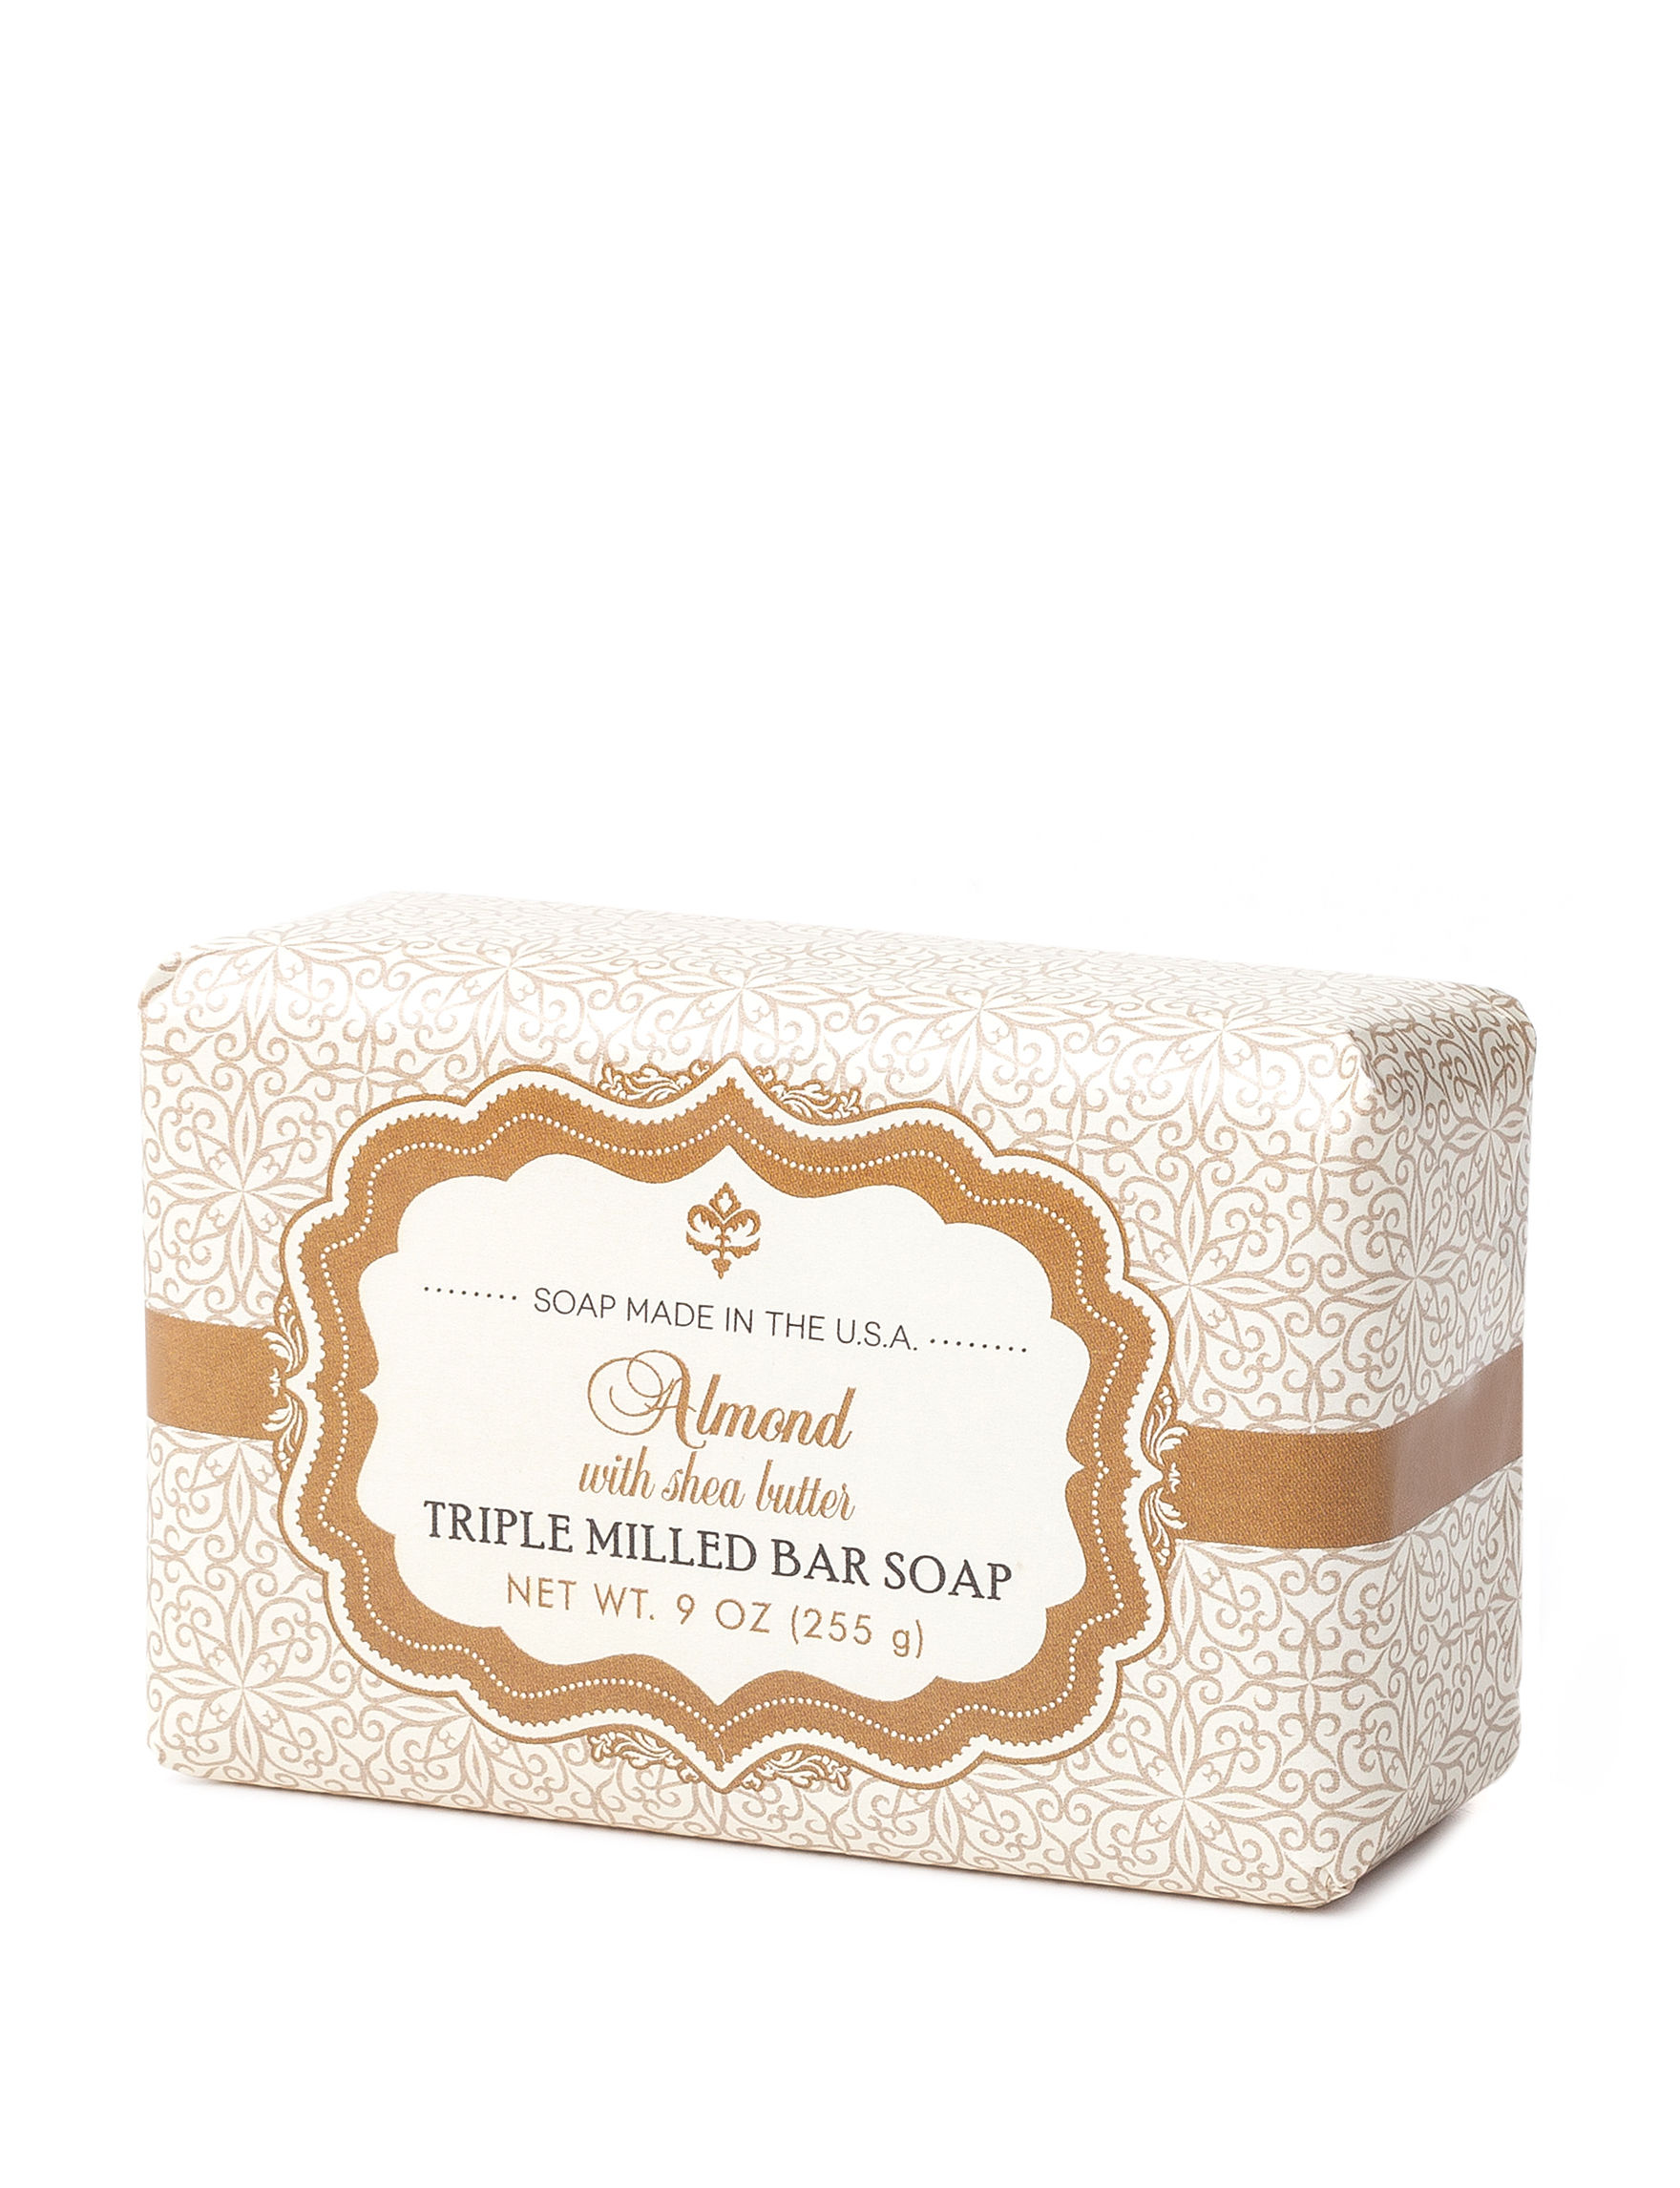 Common Wealth Soaps Almond Soaps